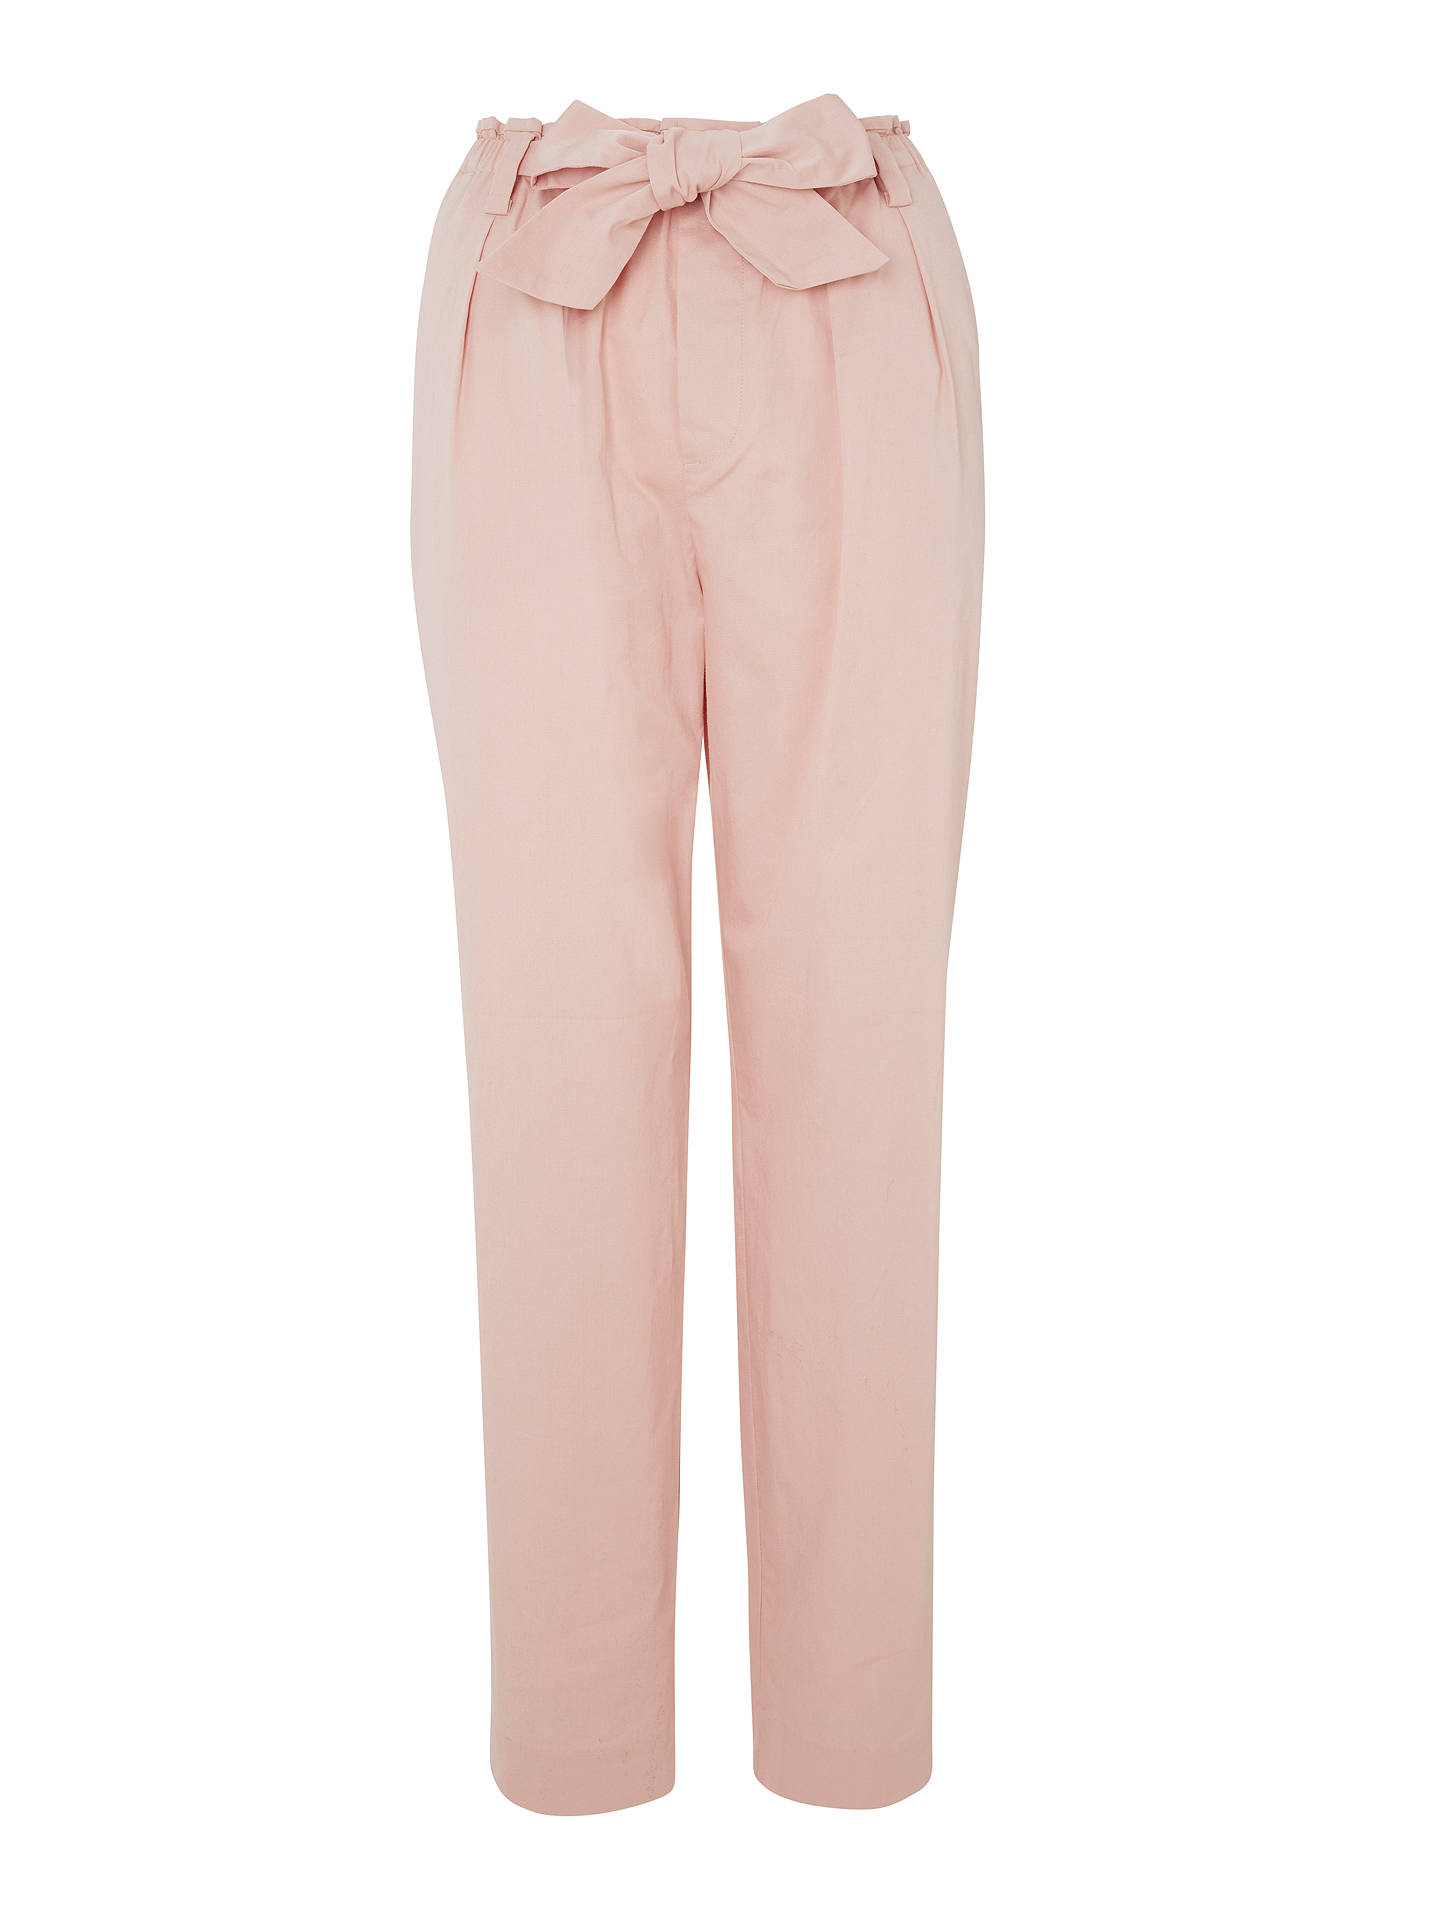 BuyMaison Scotch Paperbag Tapered Leg Trousers, Blush Pink, XS Online at johnlewis.com